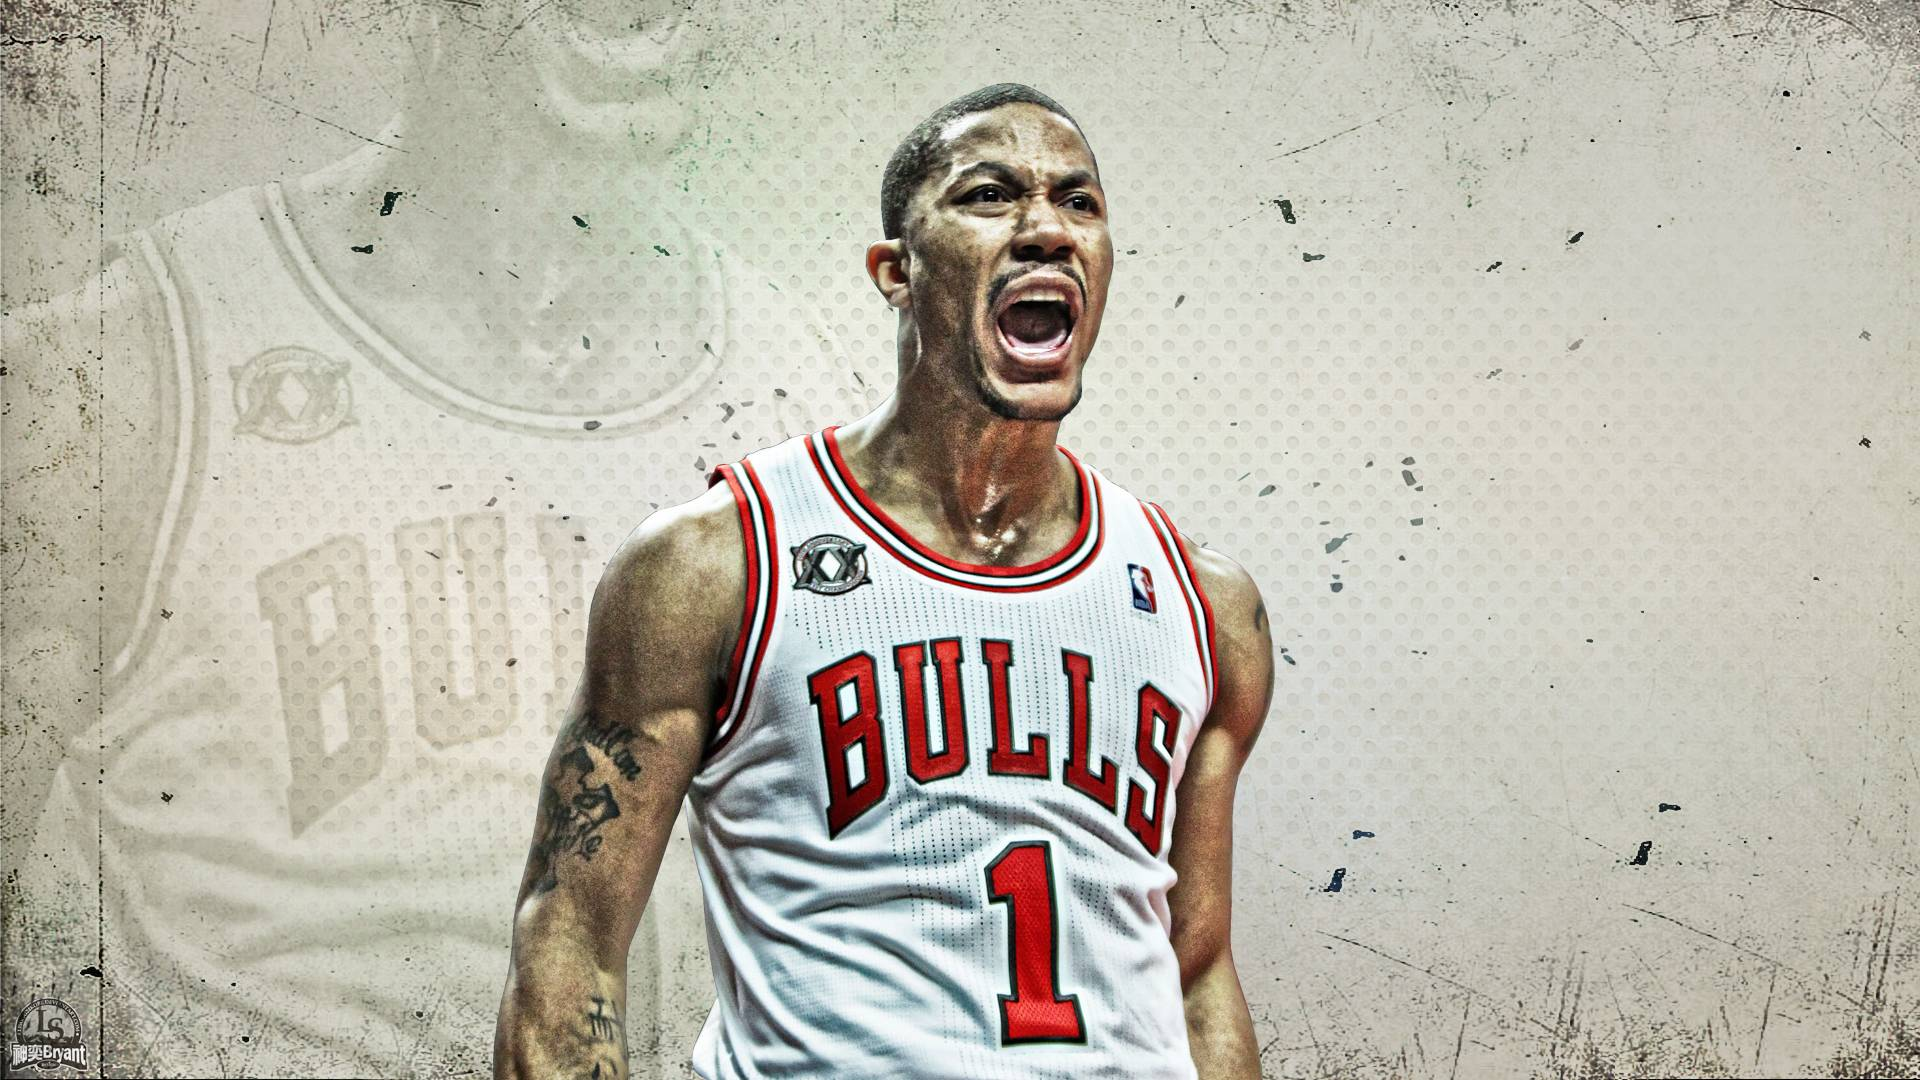 Derrick Rose Wallpapers HD 2016 1920x1080